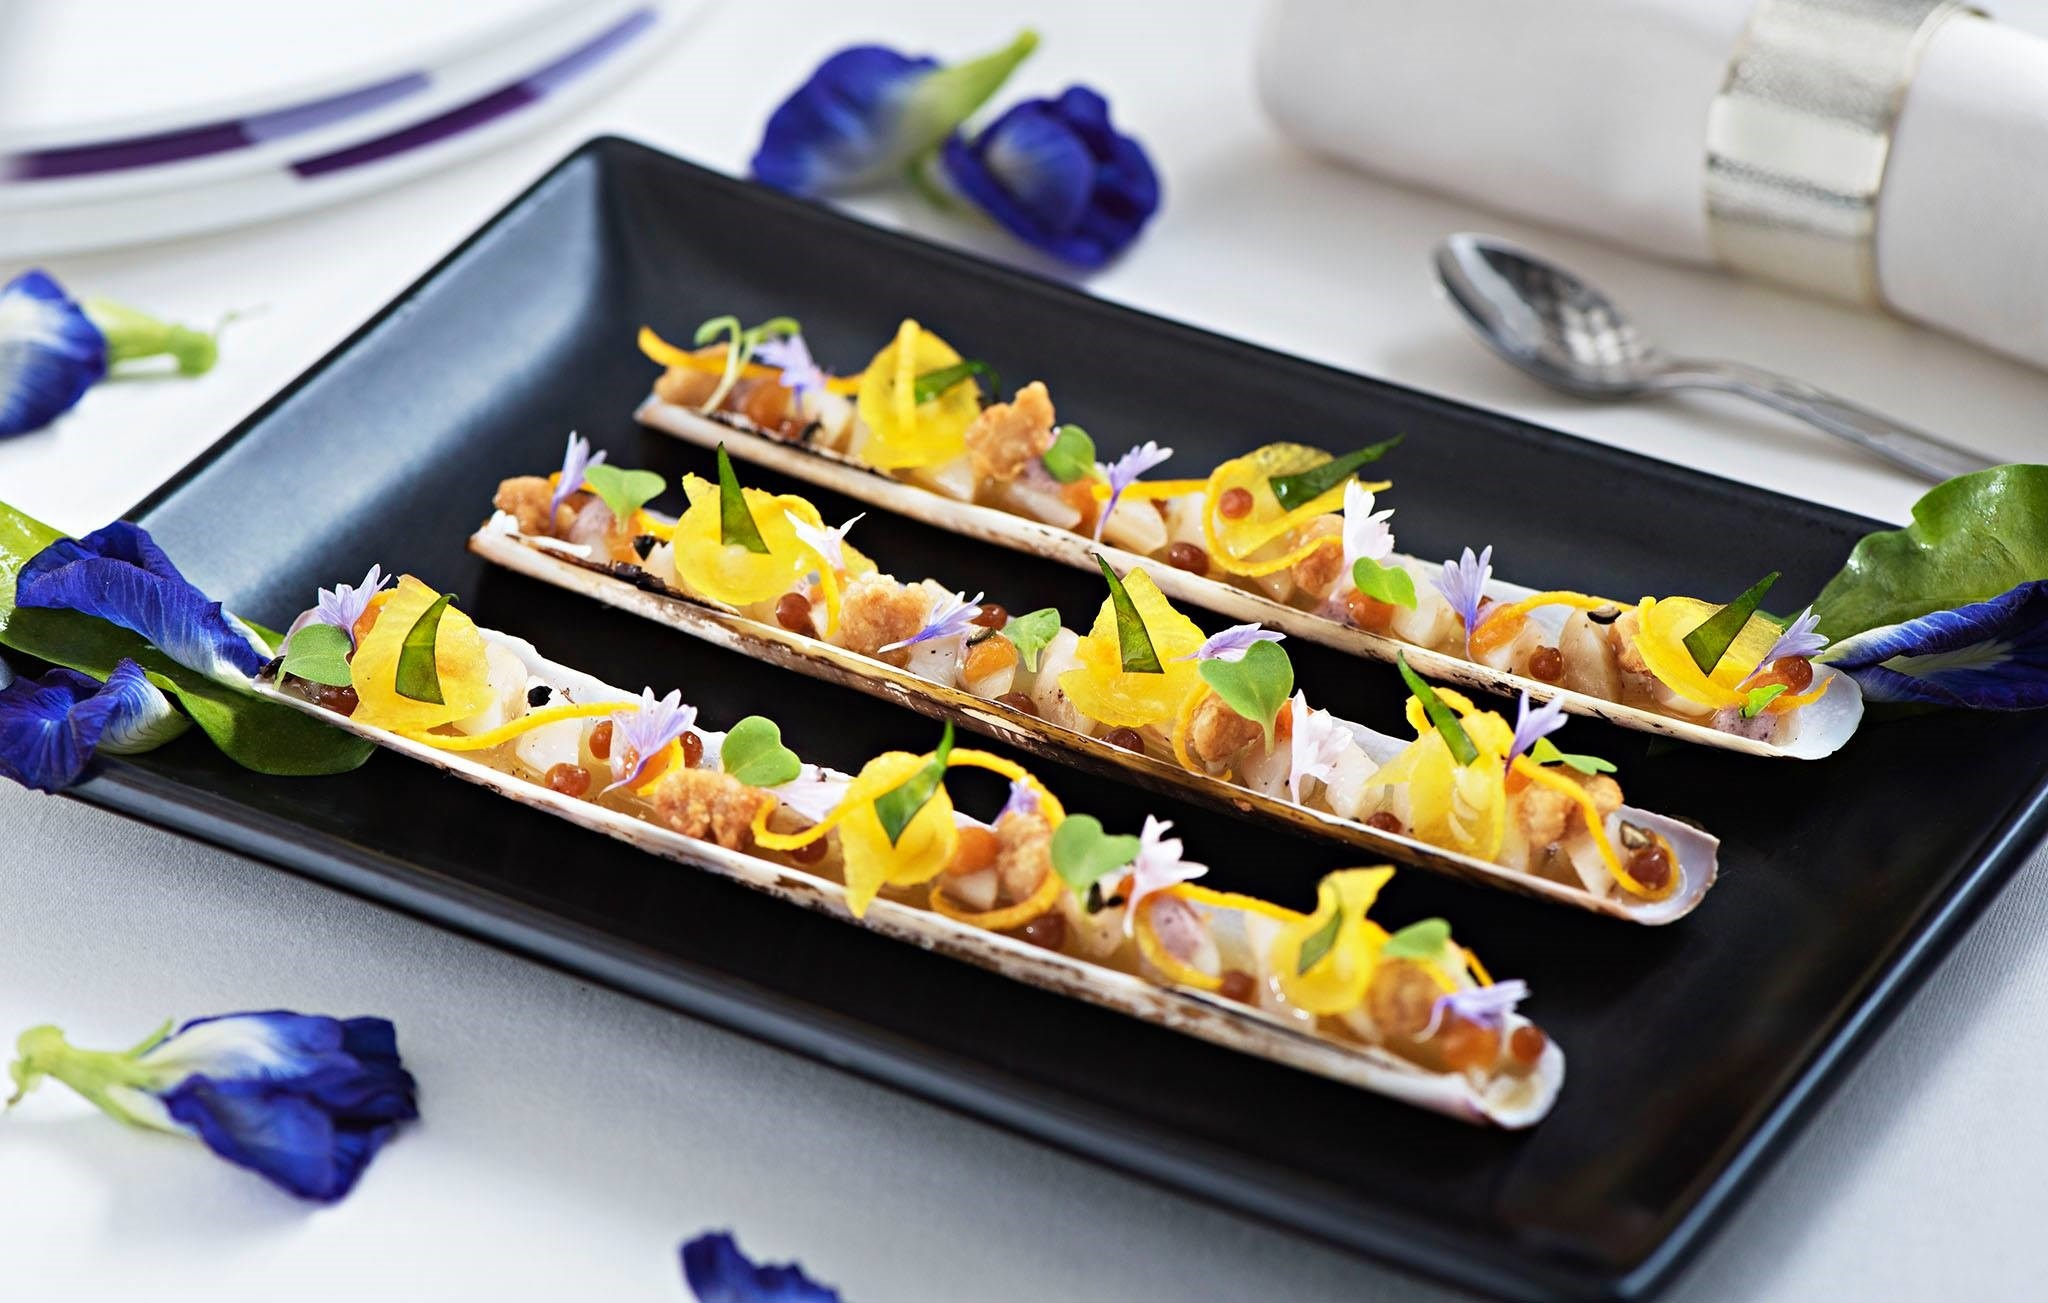 Razor clams in their gelee with crispy sweetbread, green peppercorn, citrus puree and Grand Marnier pearls